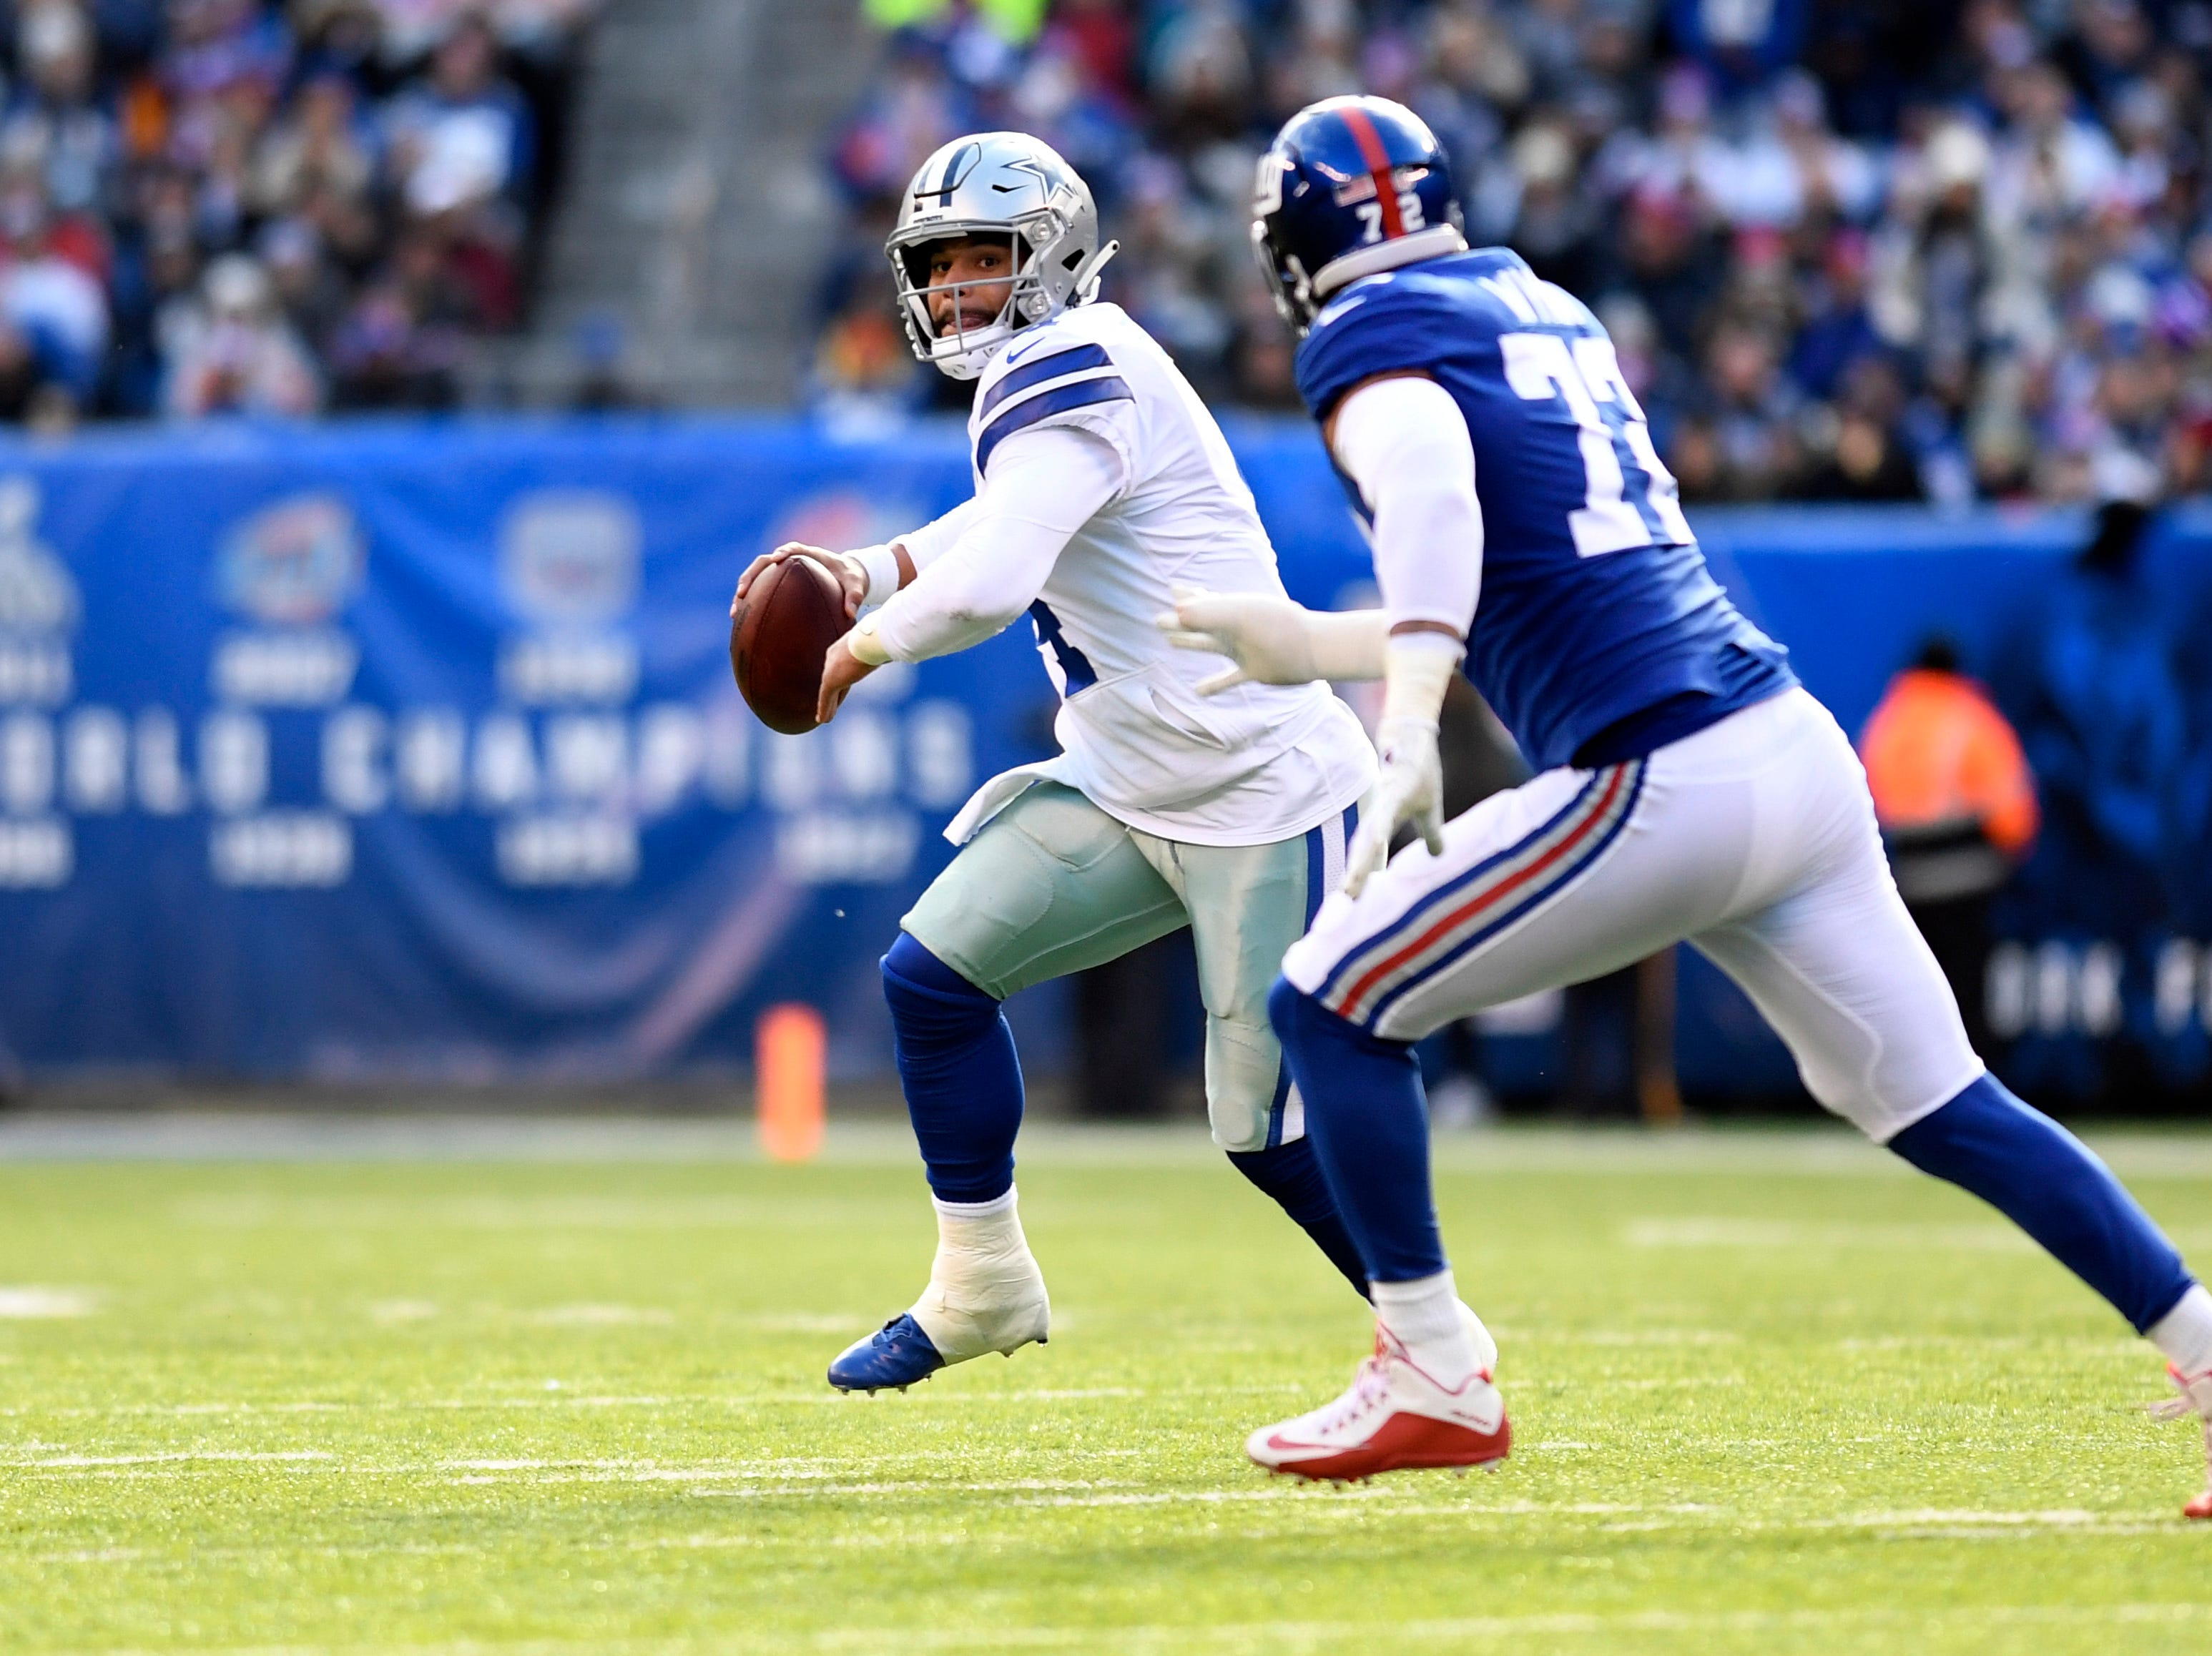 Dallas Cowboys quarterback Dak Prescott (4) looks for an open receiver with pressure from New York Giants defensive end Kerry Wynn (72) in the first half. The New York Giants face the Dallas Cowboys in the last regular season game on Sunday, Dec. 30, 2018, in East Rutherford.